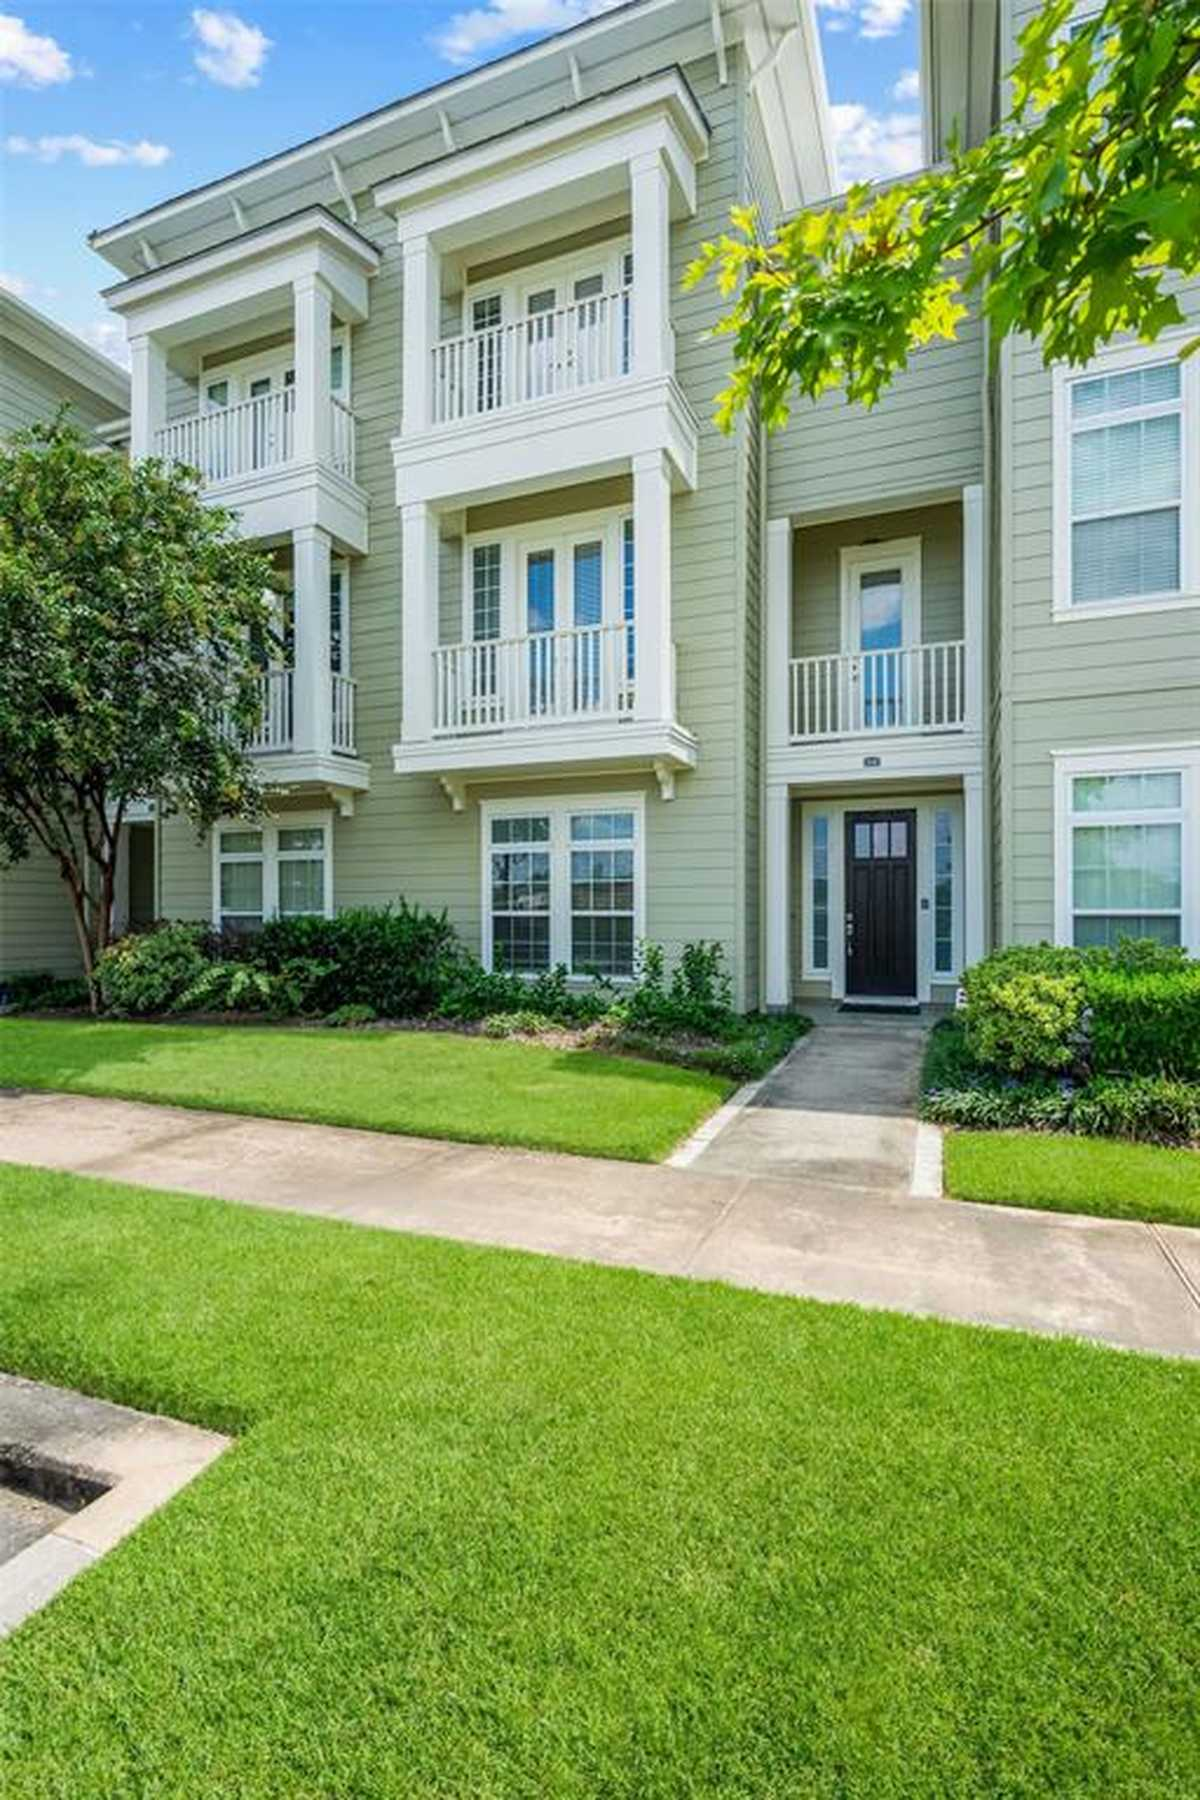 $575,000 - 3Br/4Ba -  for Sale in Oasis Pointe Twnhms, The Woodlands